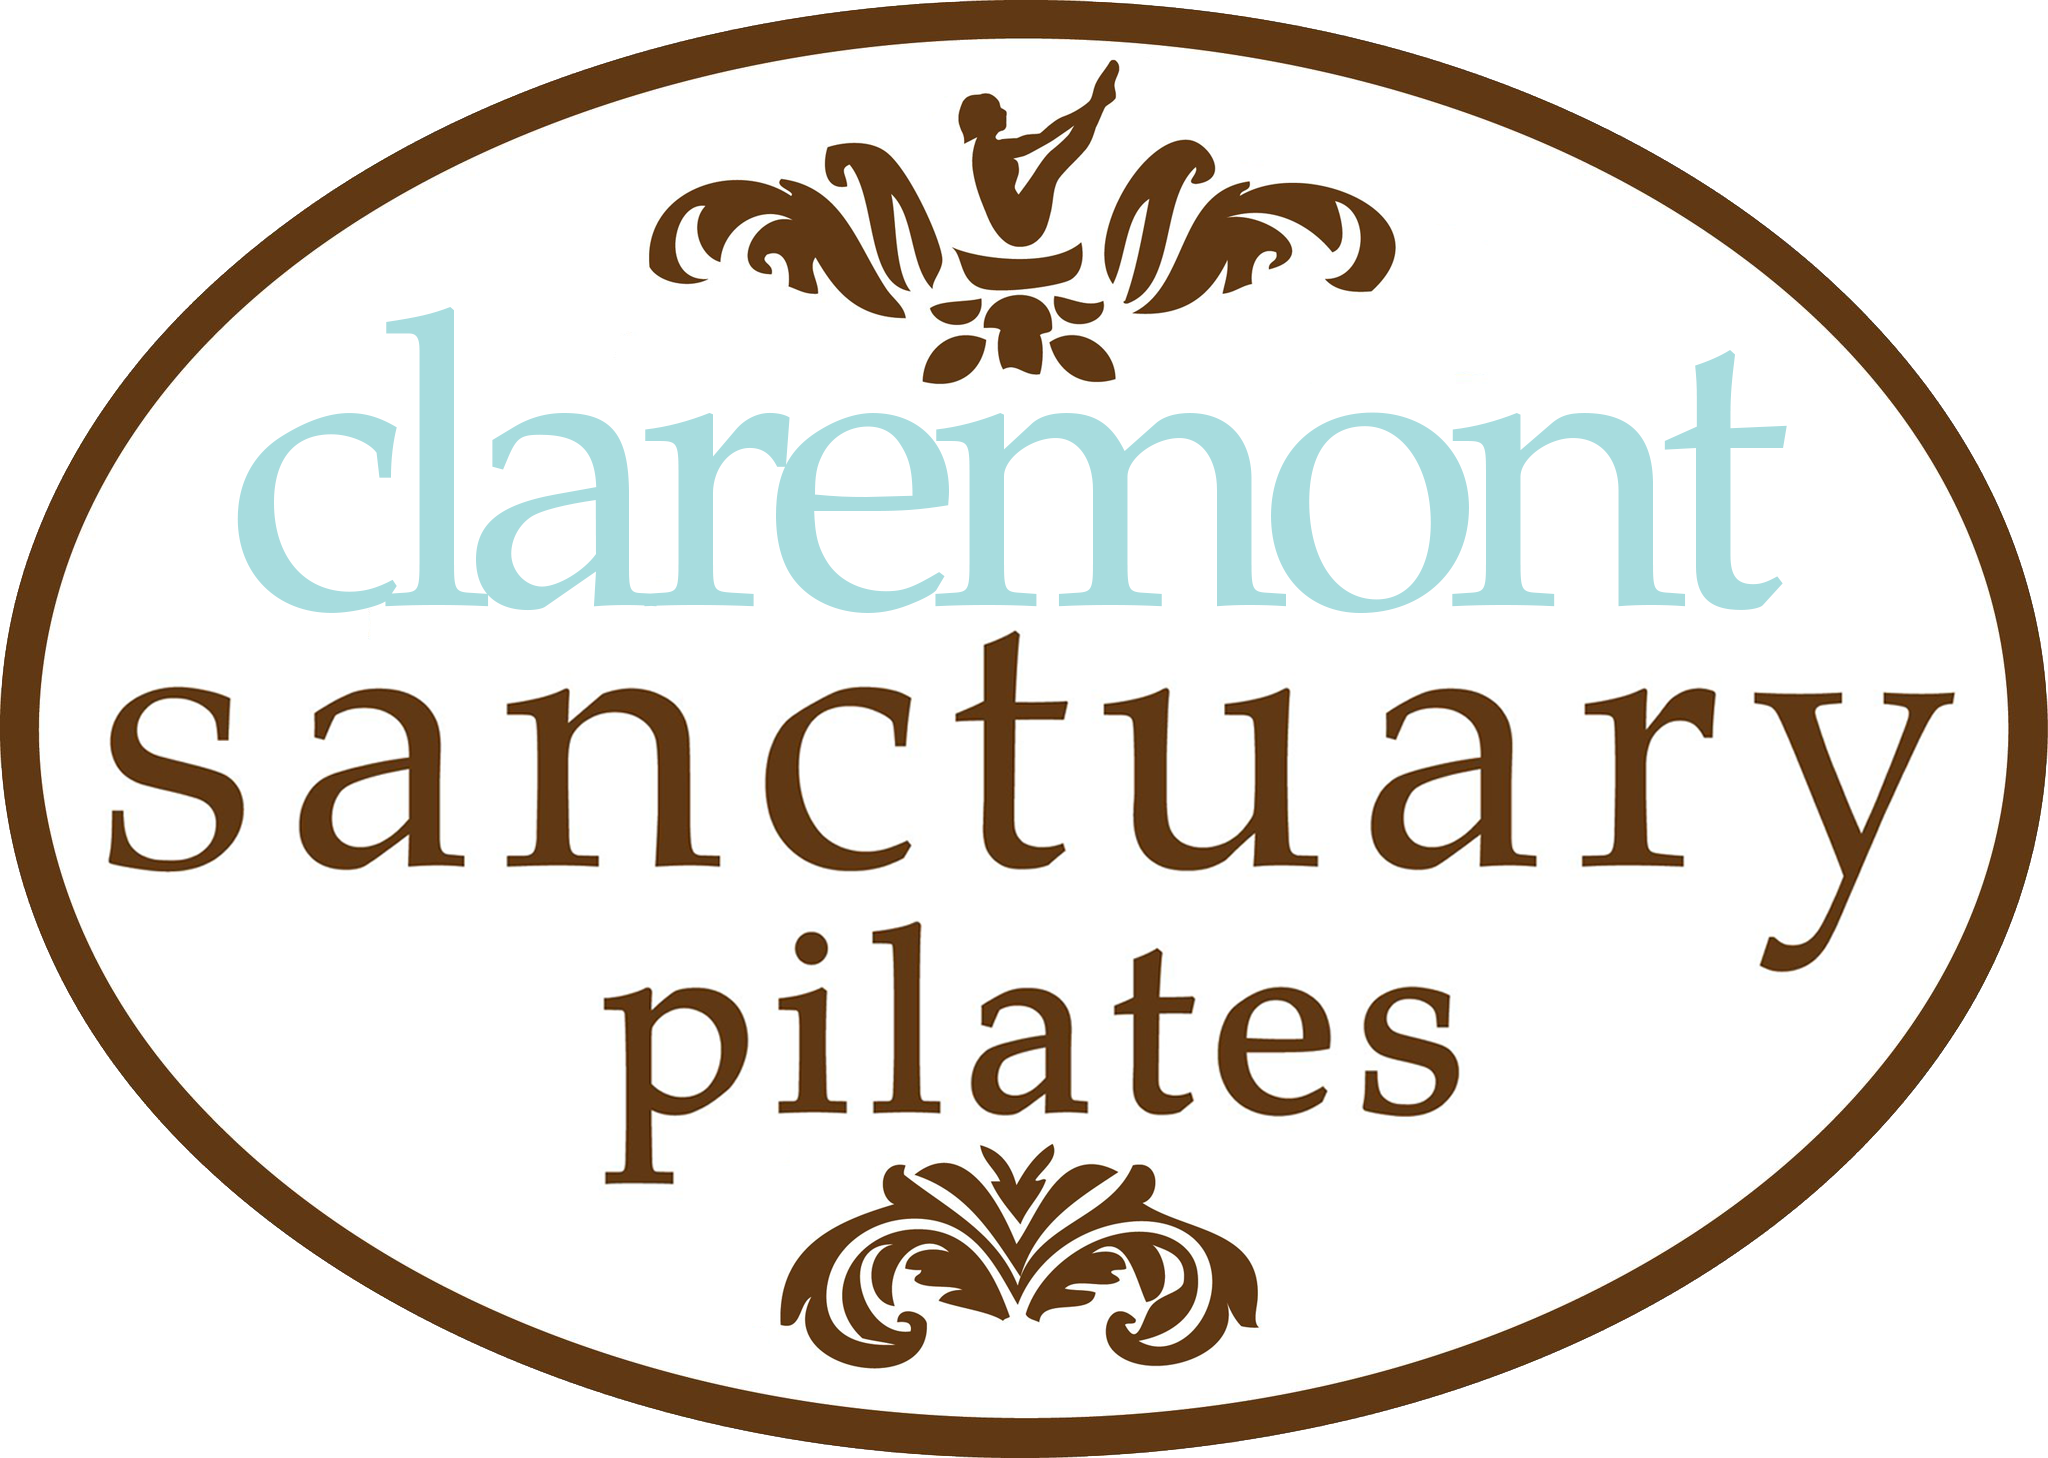 Stott Pilates Classes | Claremont Sanctuary Pilates